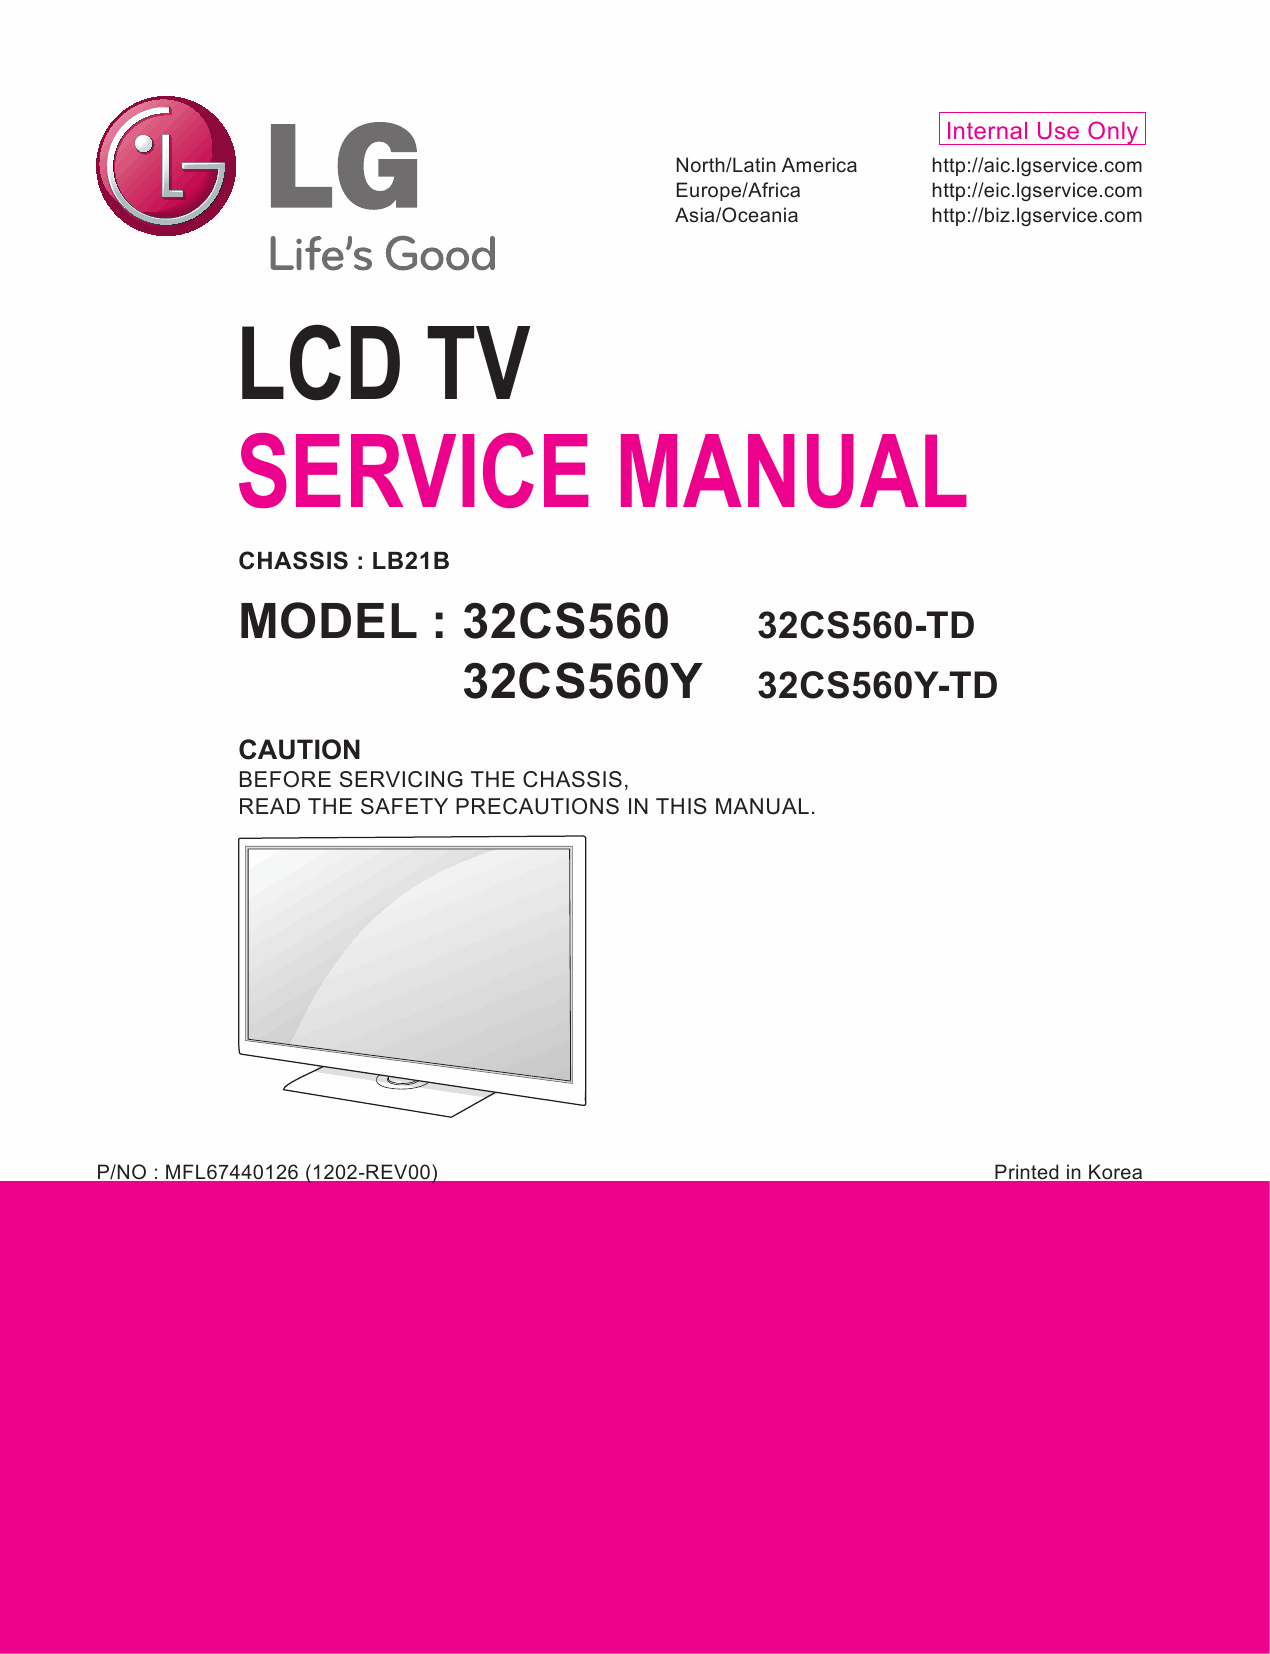 LG_LCD_TV_32CS560_560Y_Service_Manual_2012_Qmanual.com-1